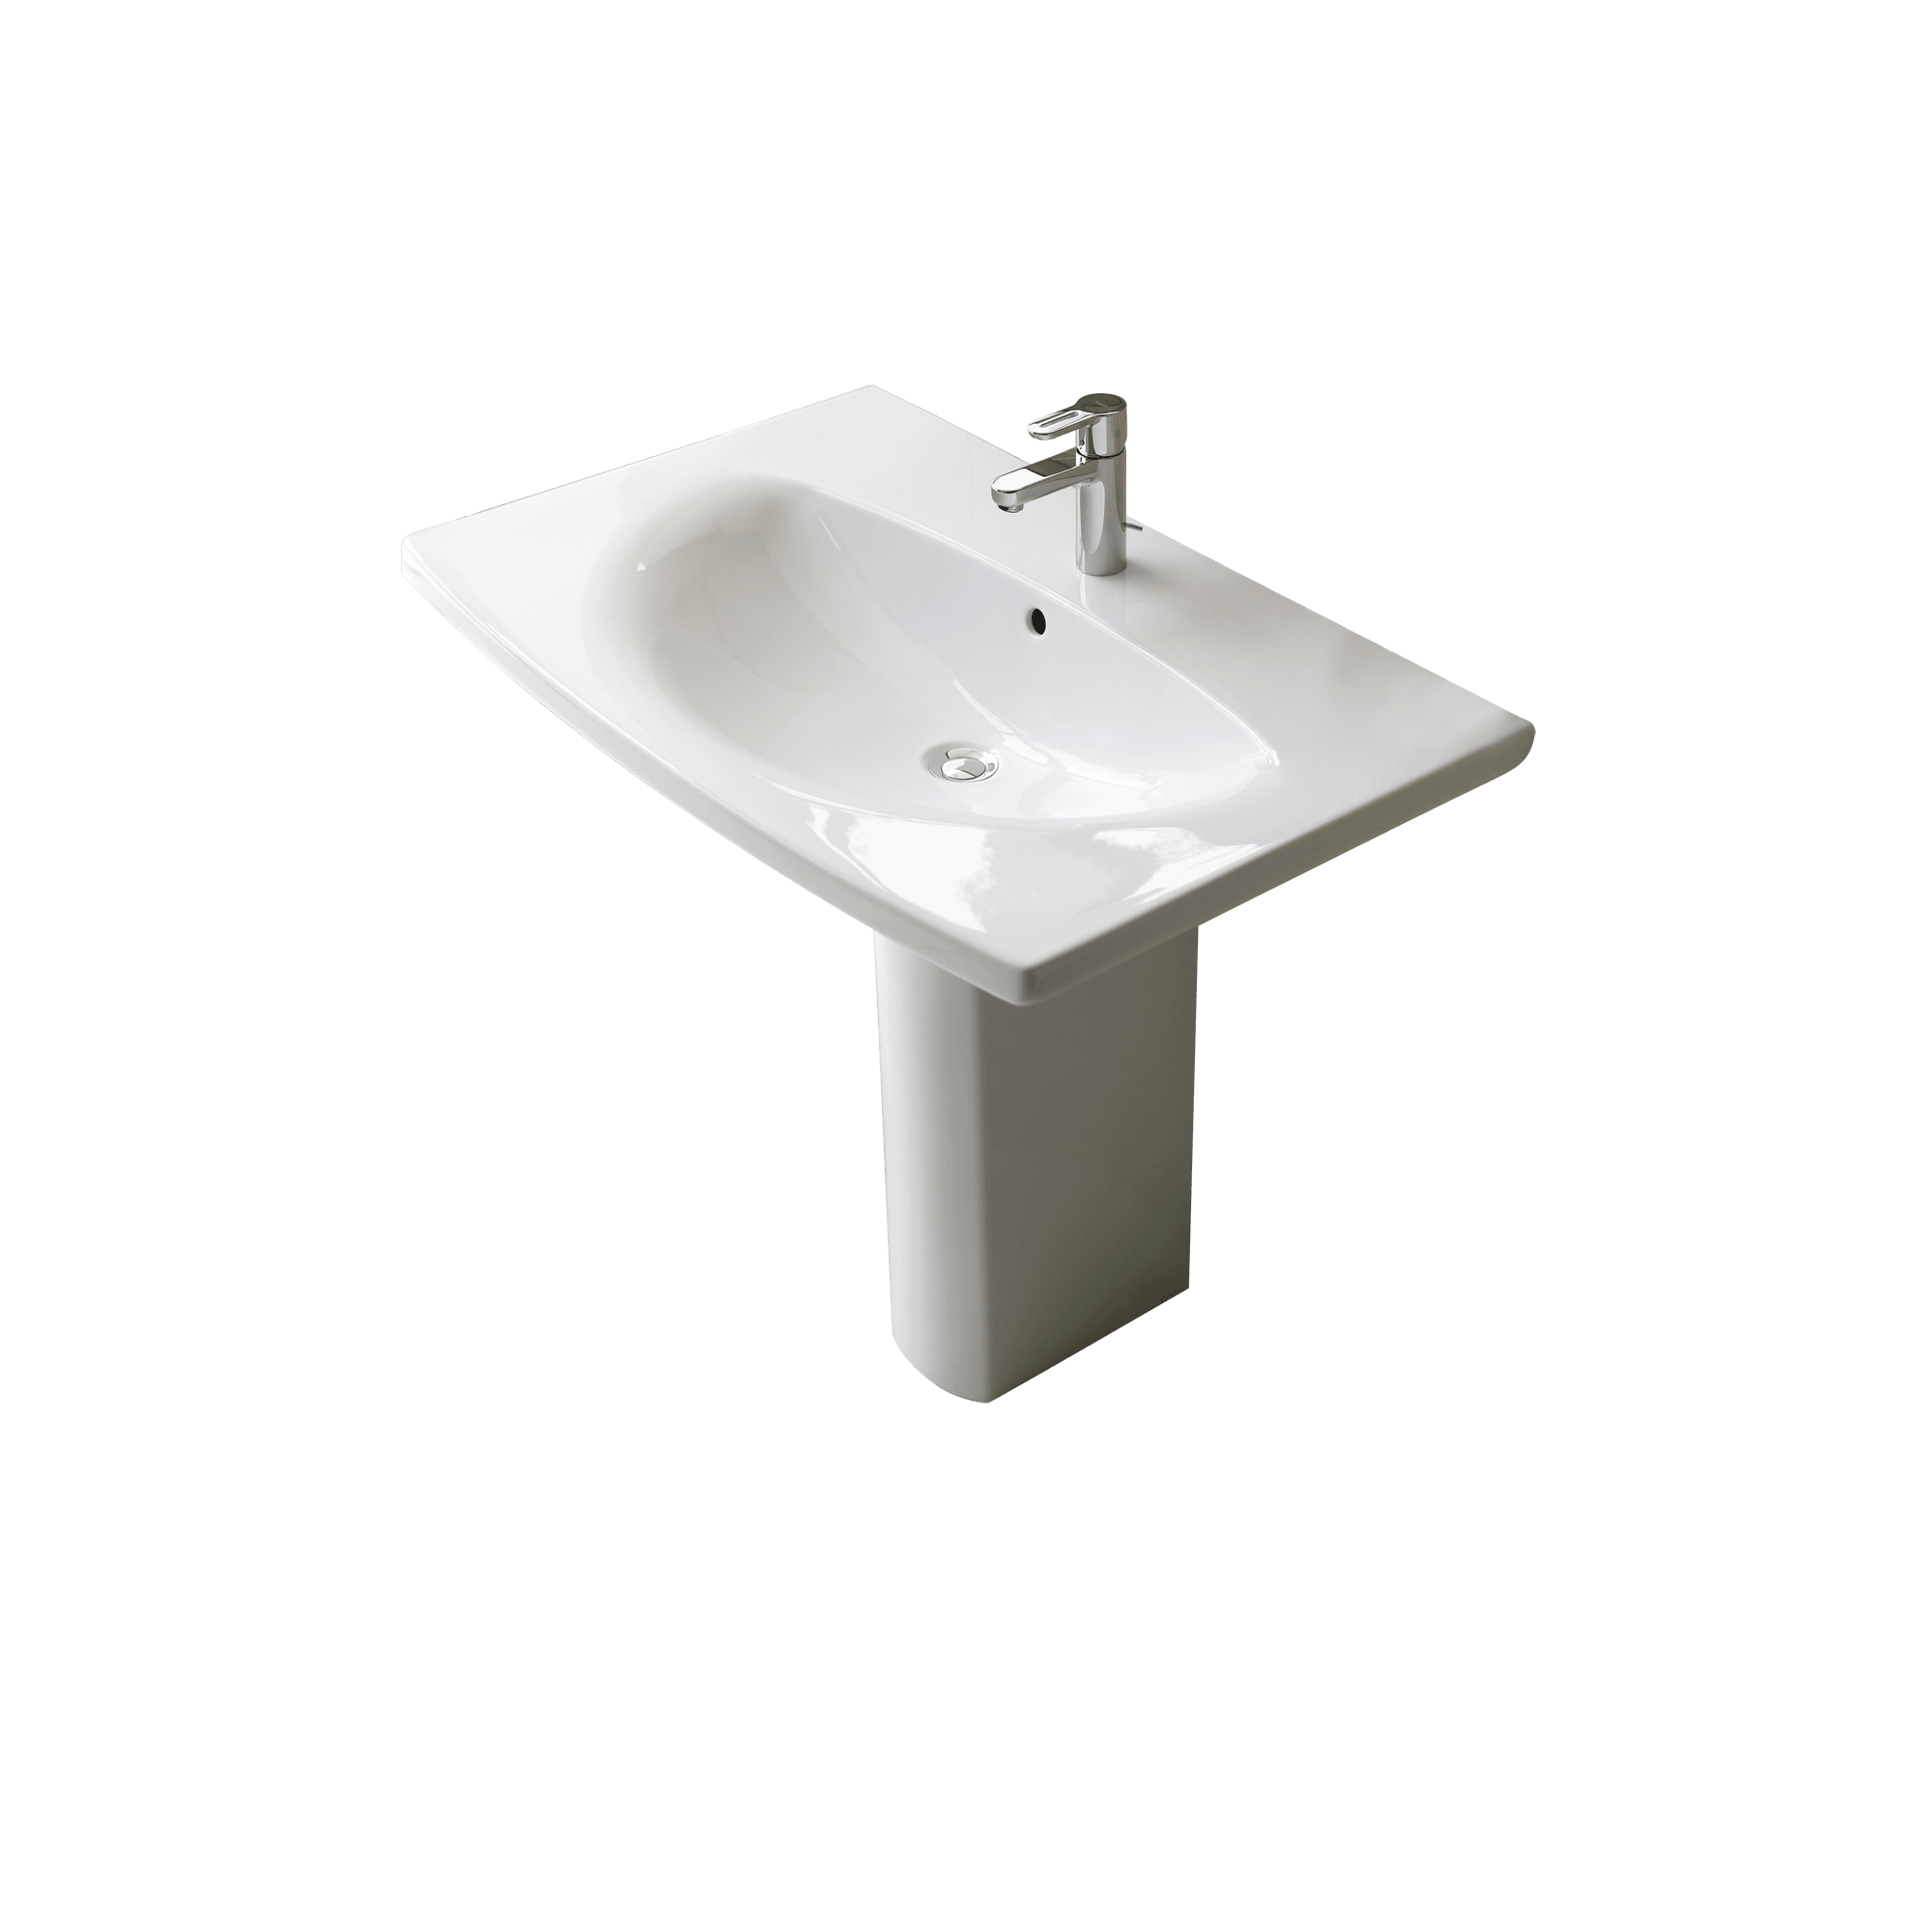 desisn spacious pin that offers will the basin a pedestal upgrade hathaway large sink duravit regal and